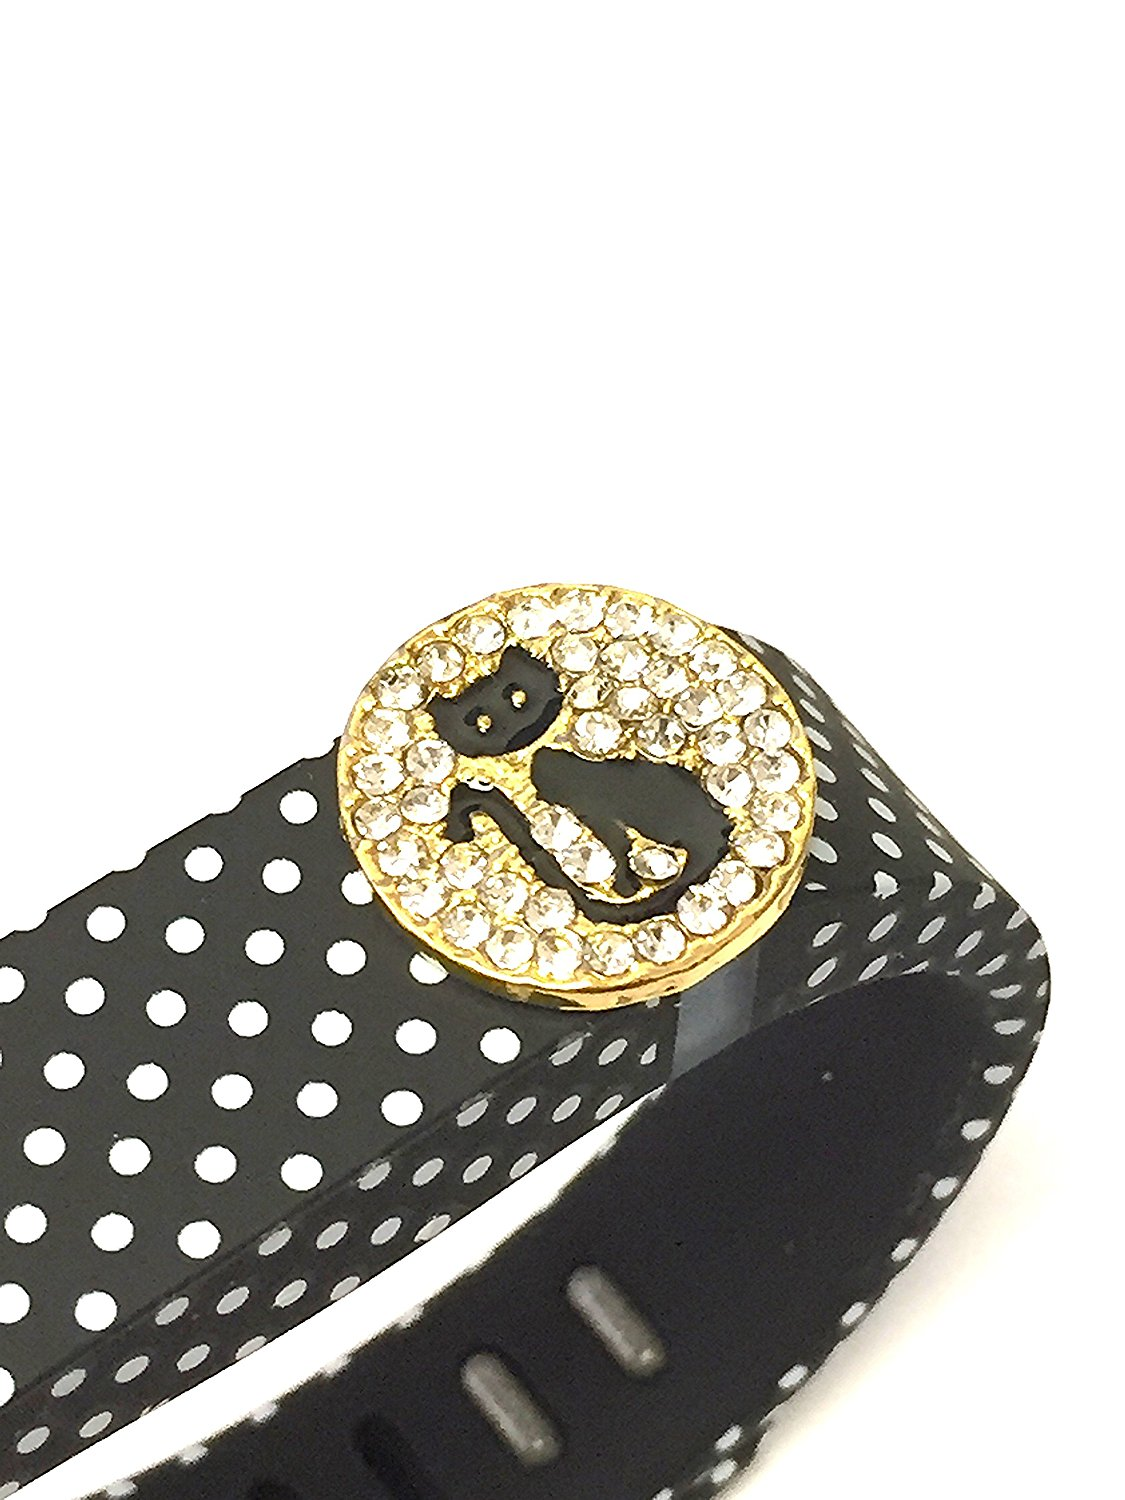 BSI 1pc Small Black with White Dots Spots Color Band with Jewelry Crystals Decoration /Black Cat With White Crystals and Gold/ for Fitbit FLEX Only With Metal Clasp Replacement /No tracker/+ Nice Crystals Feather Brooch